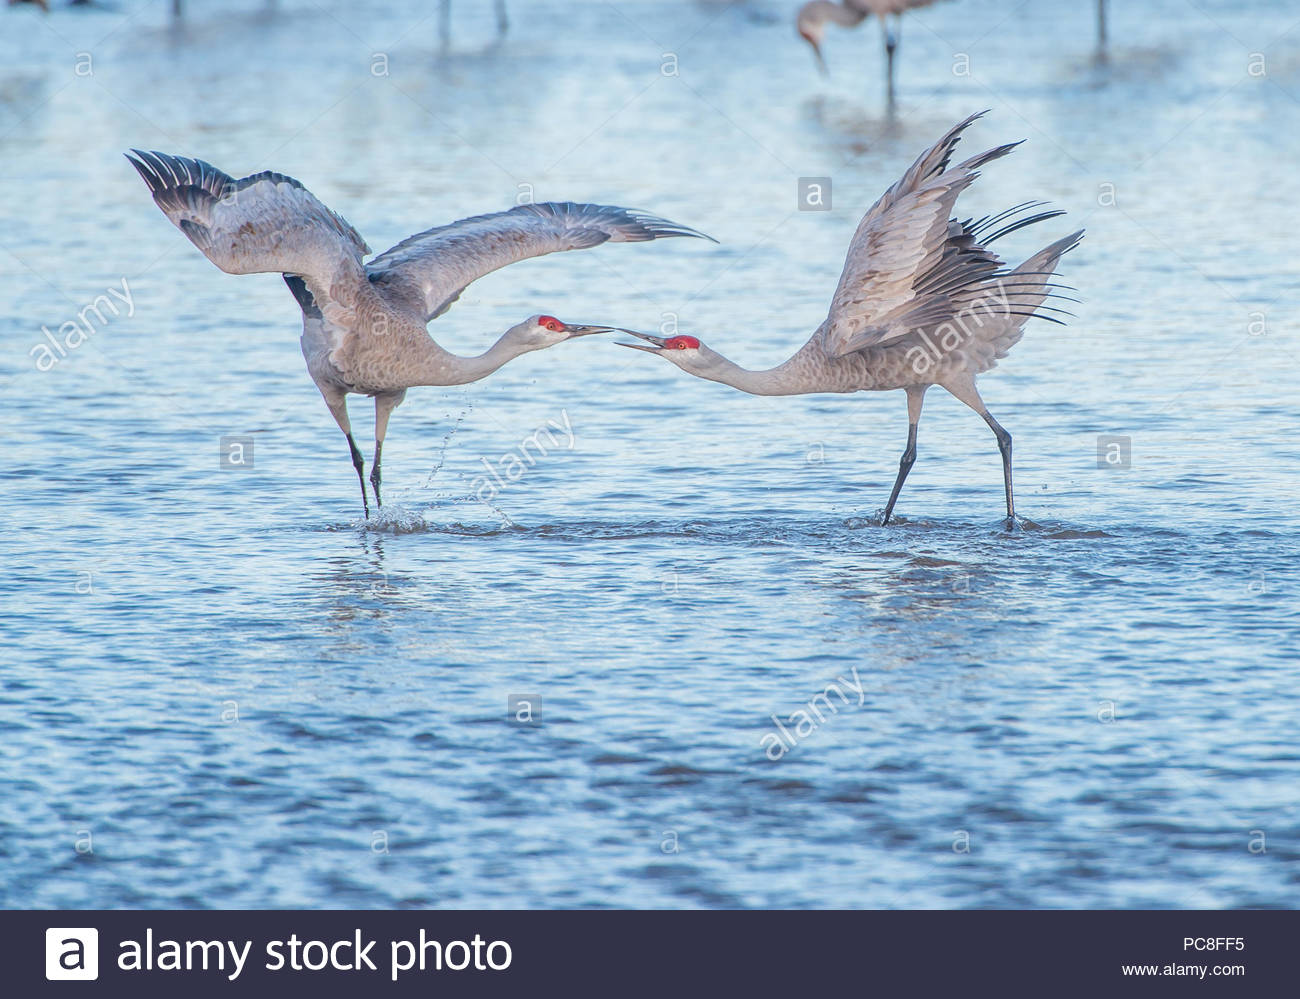 Dancing sandhill cranes in a river Stock Photo